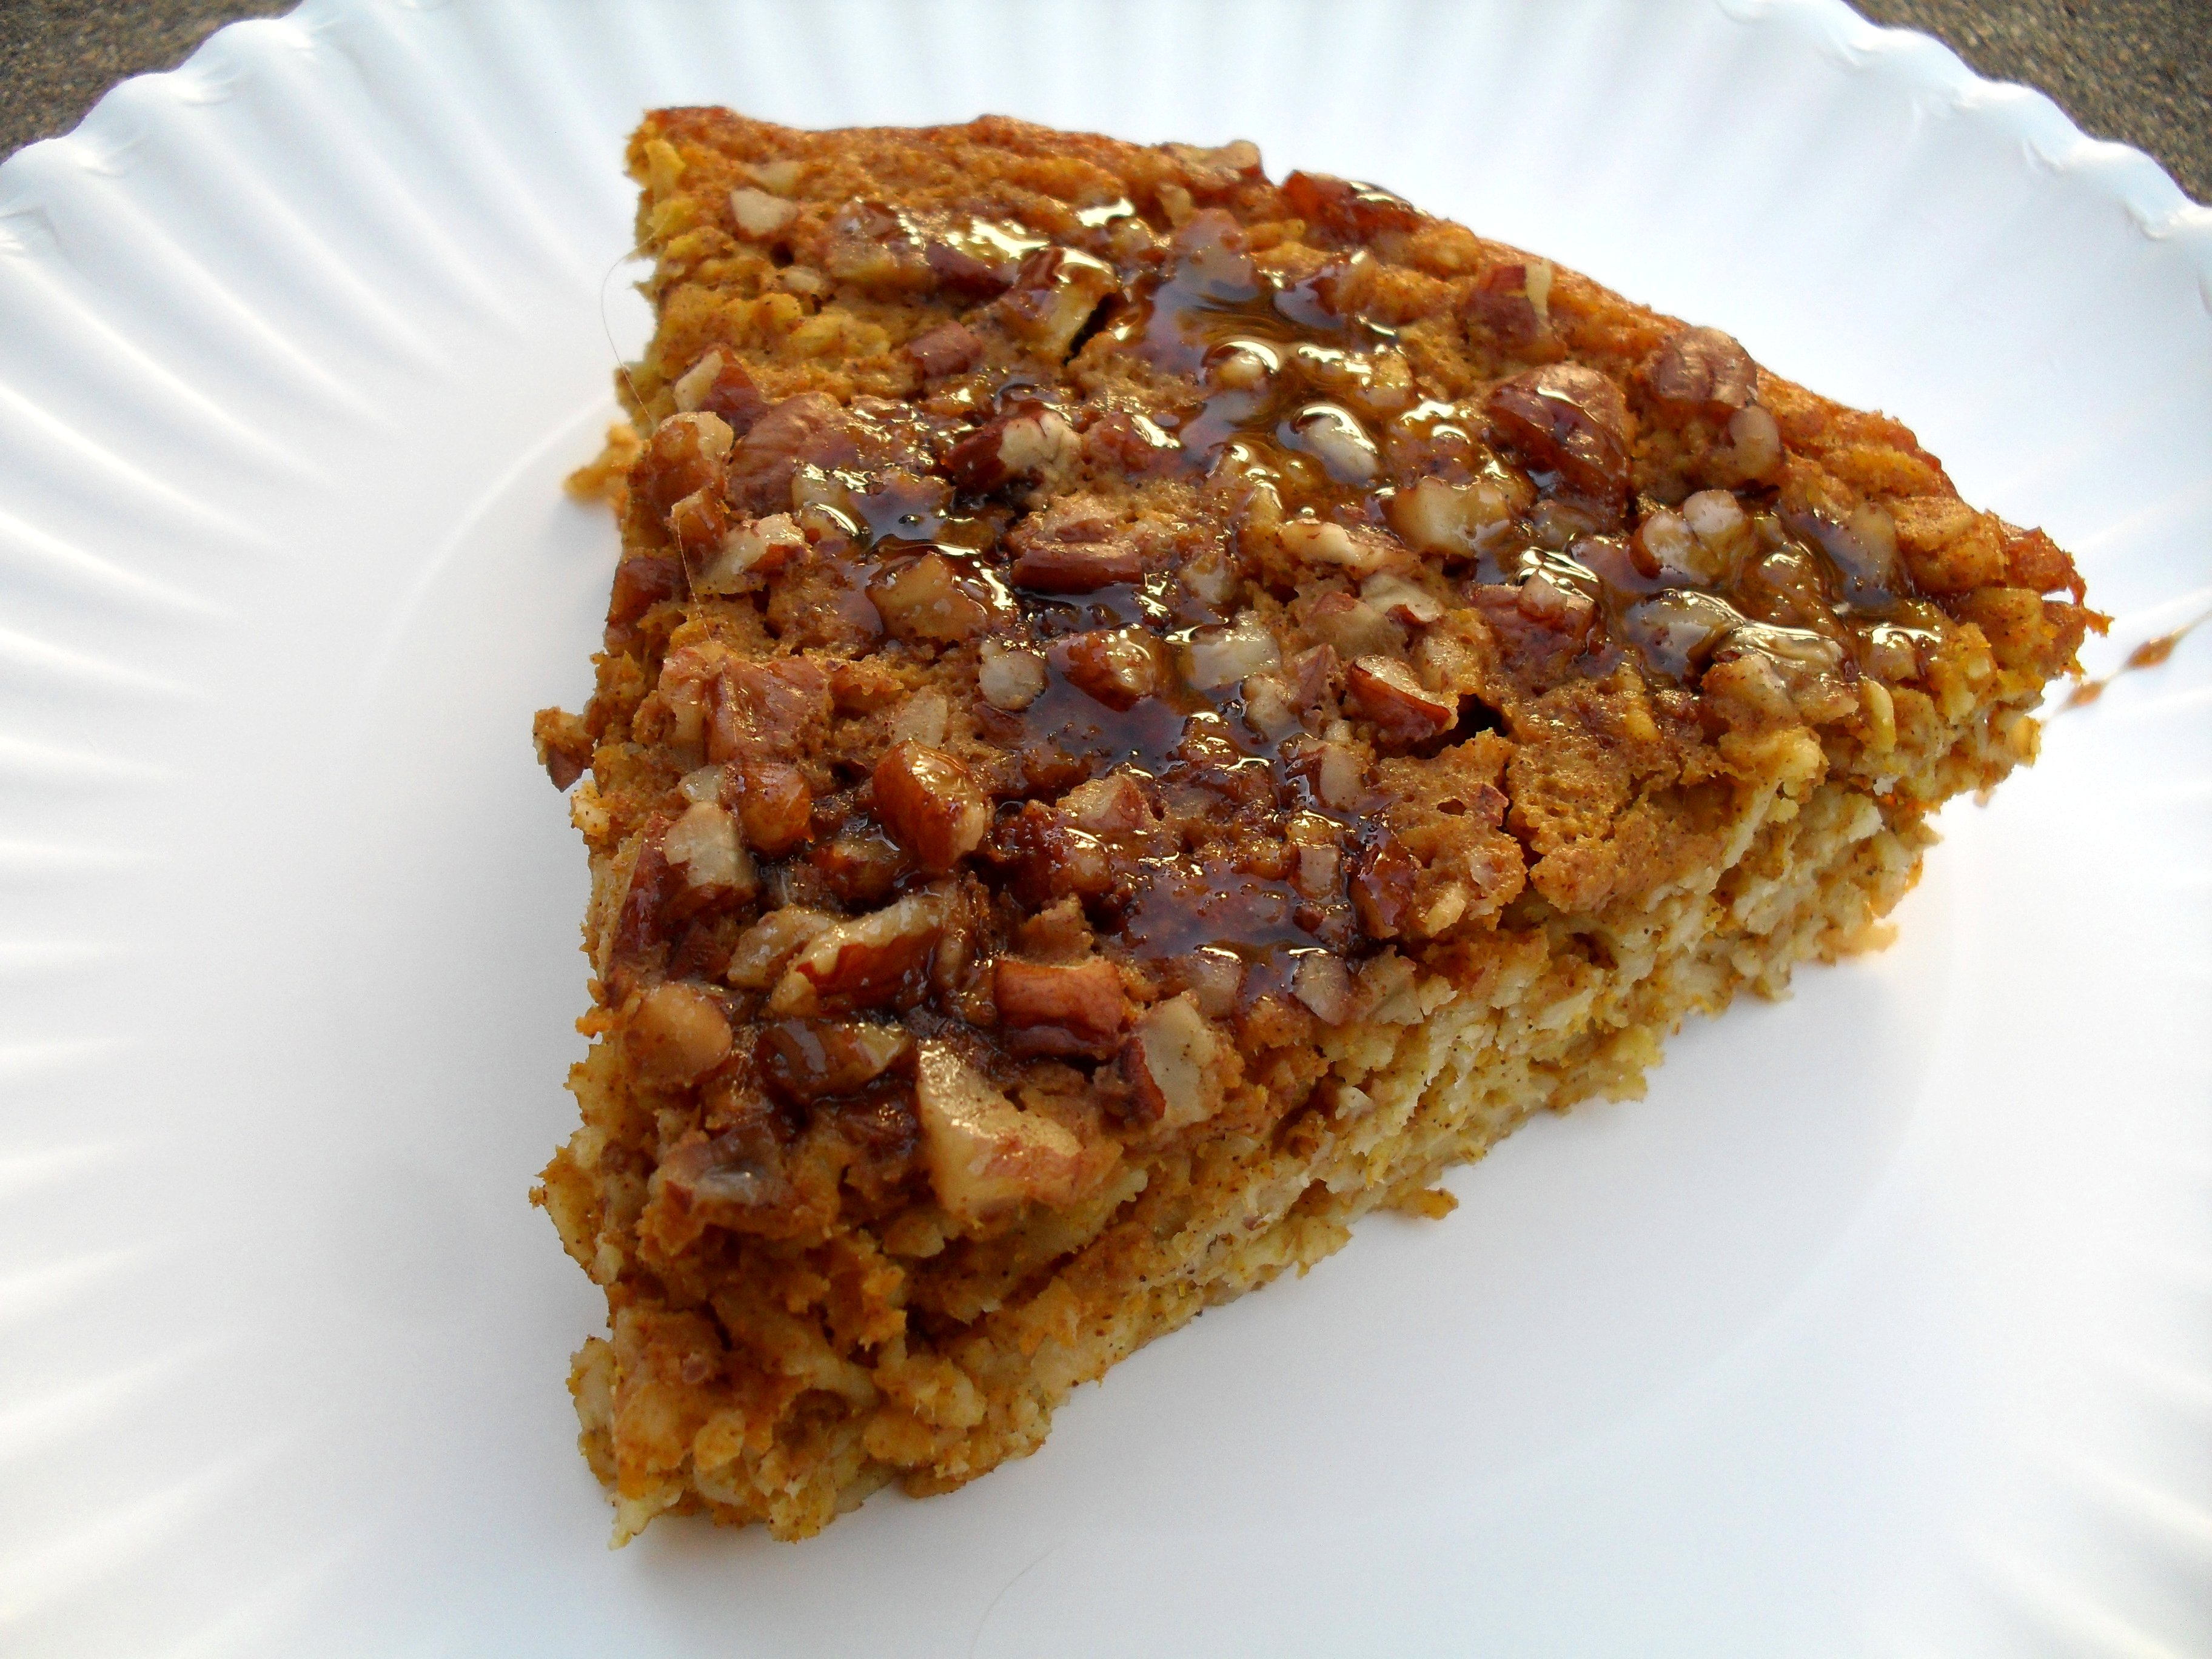 Published October 2, 2011 at 3648 × 2736 in Pumpkin Pie Baked Oatmeal